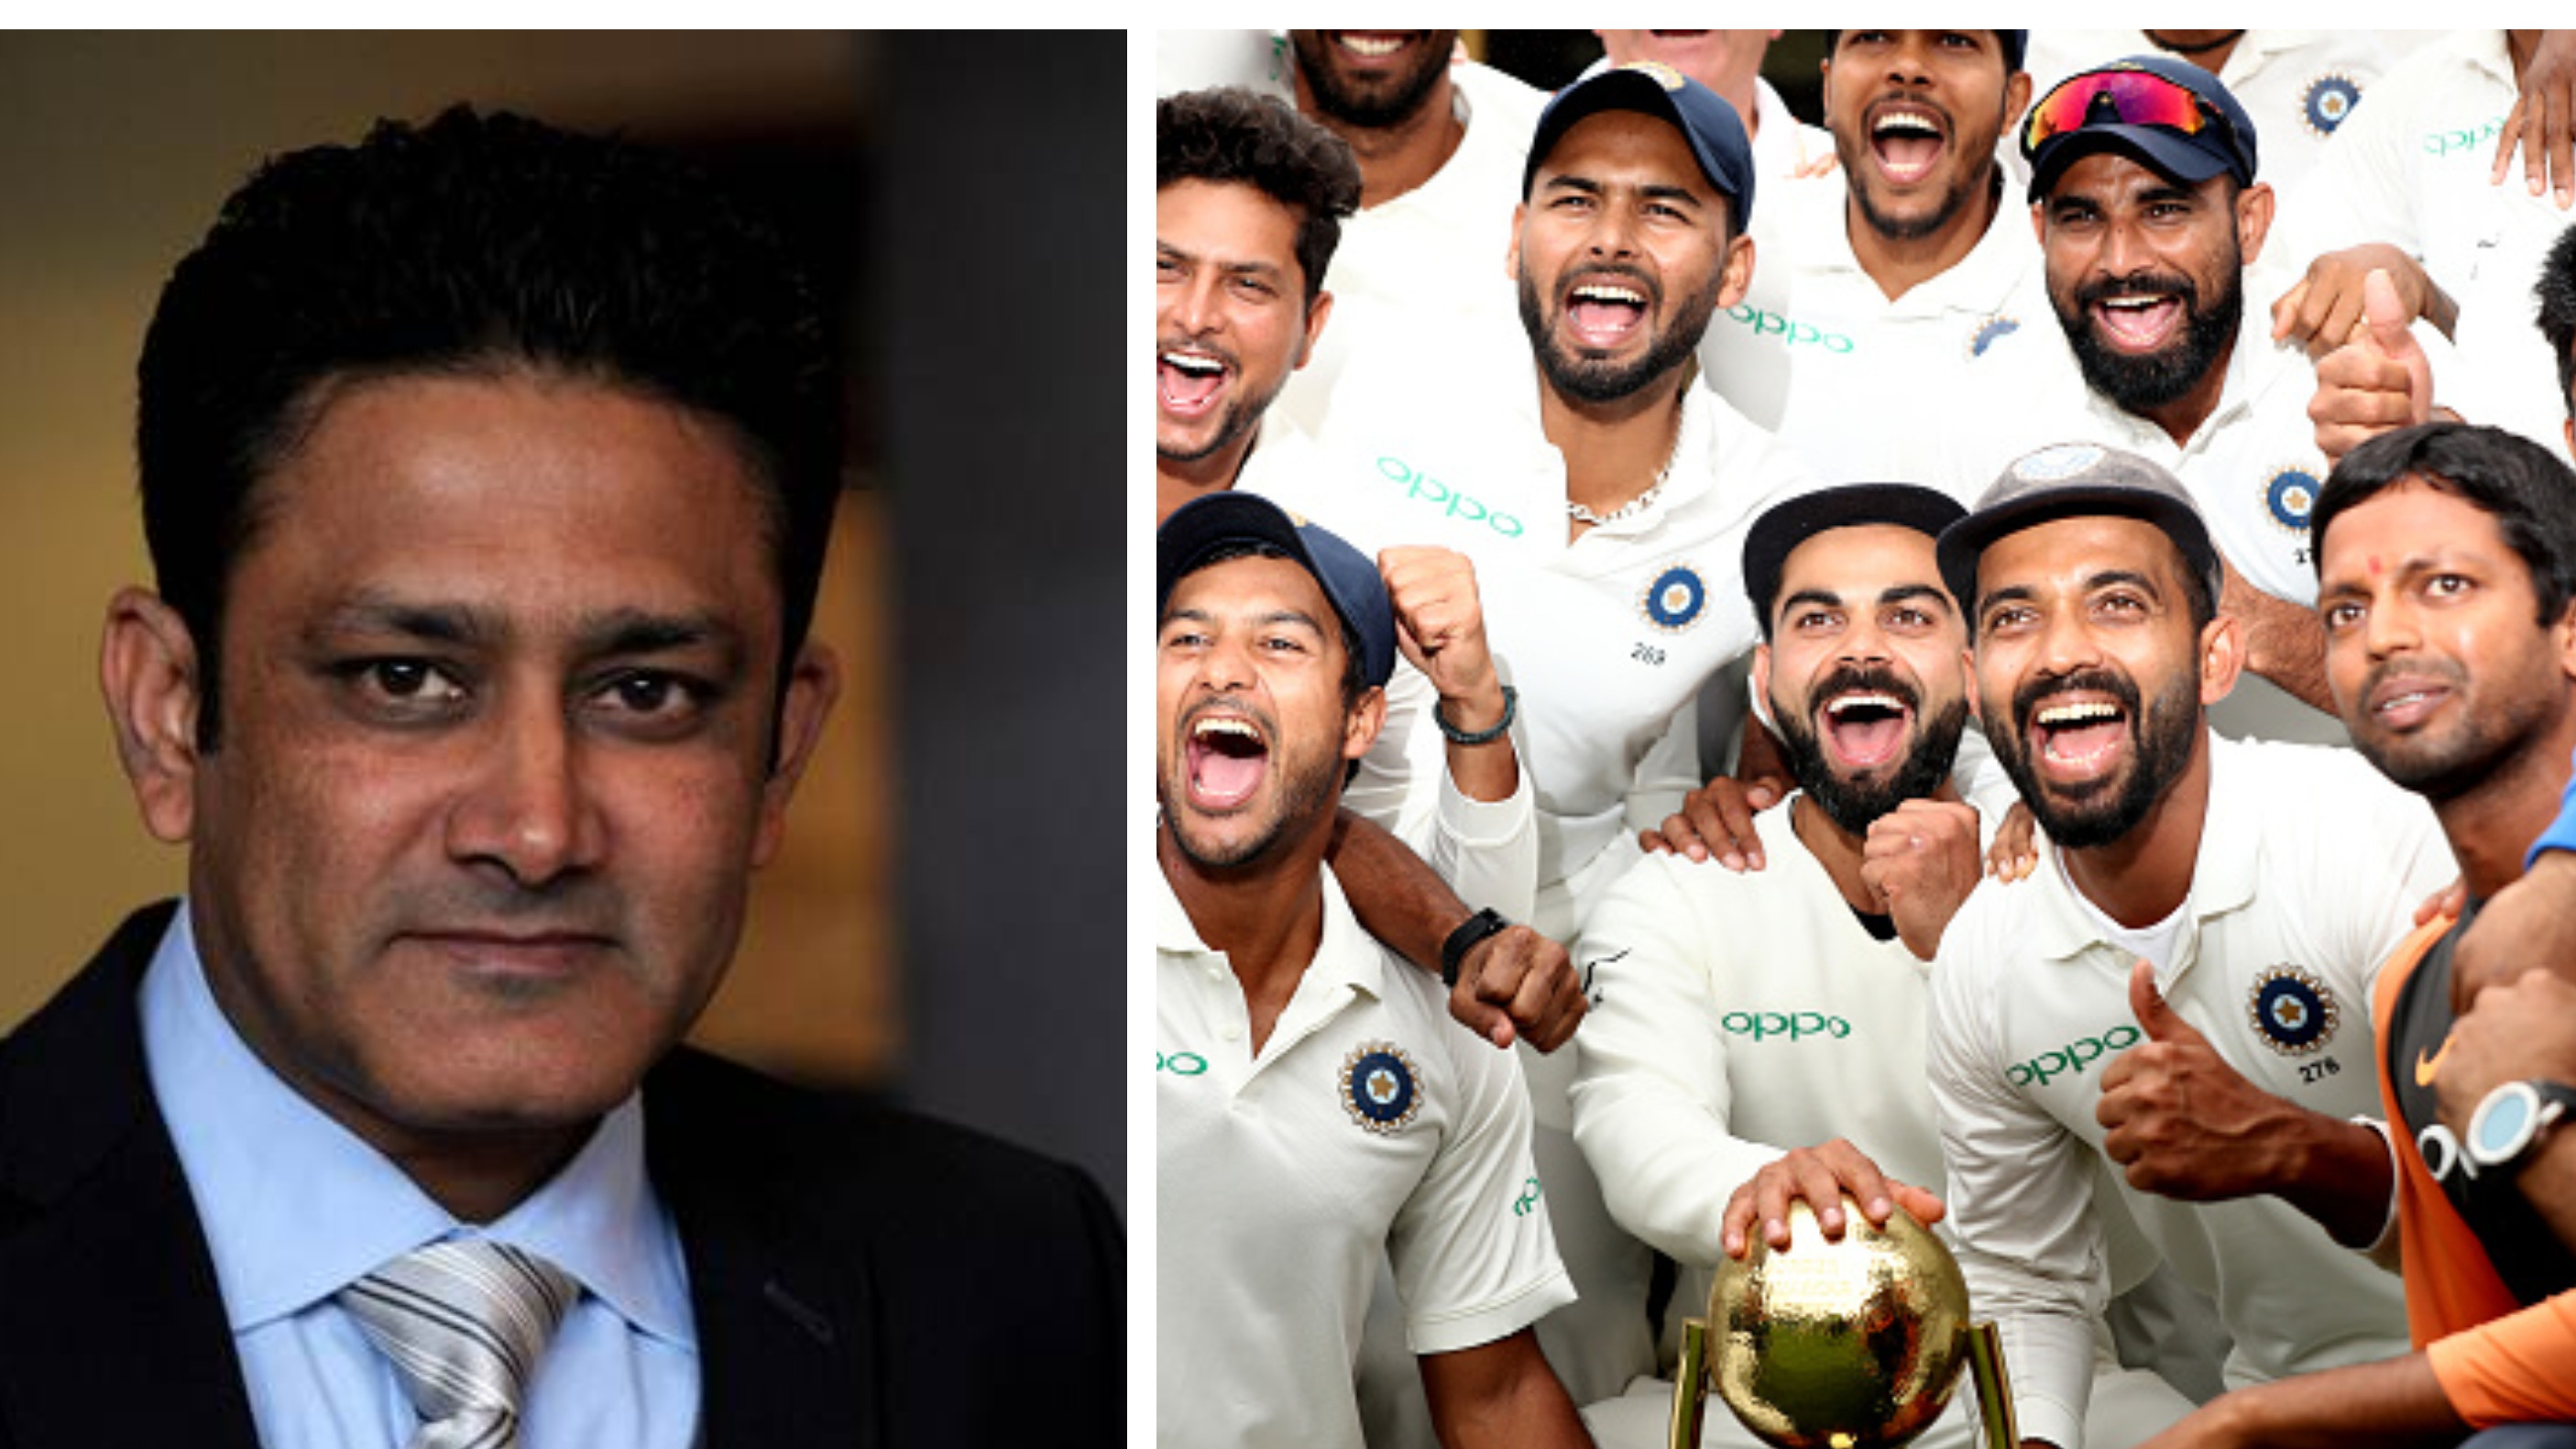 AUS v IND 2018-19: WATCH - Anil Kumble gets his prediction spot on as India wins the Test series 2-1